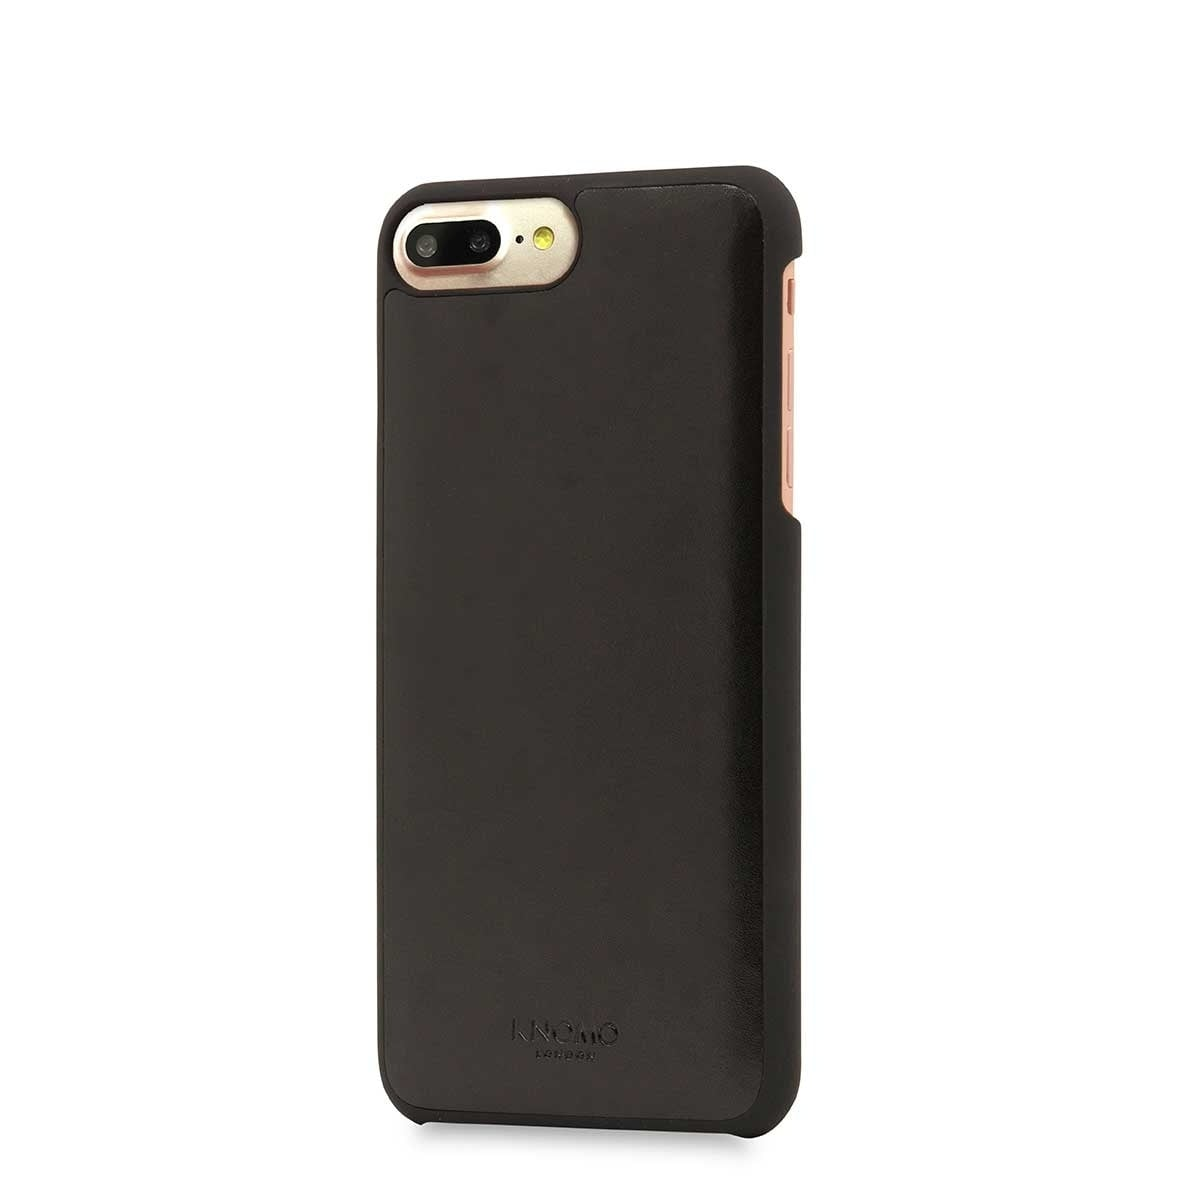 iPhone hoesje Knomo iPhone 8/7 Plus Hoesje Leather Snap On Case Black